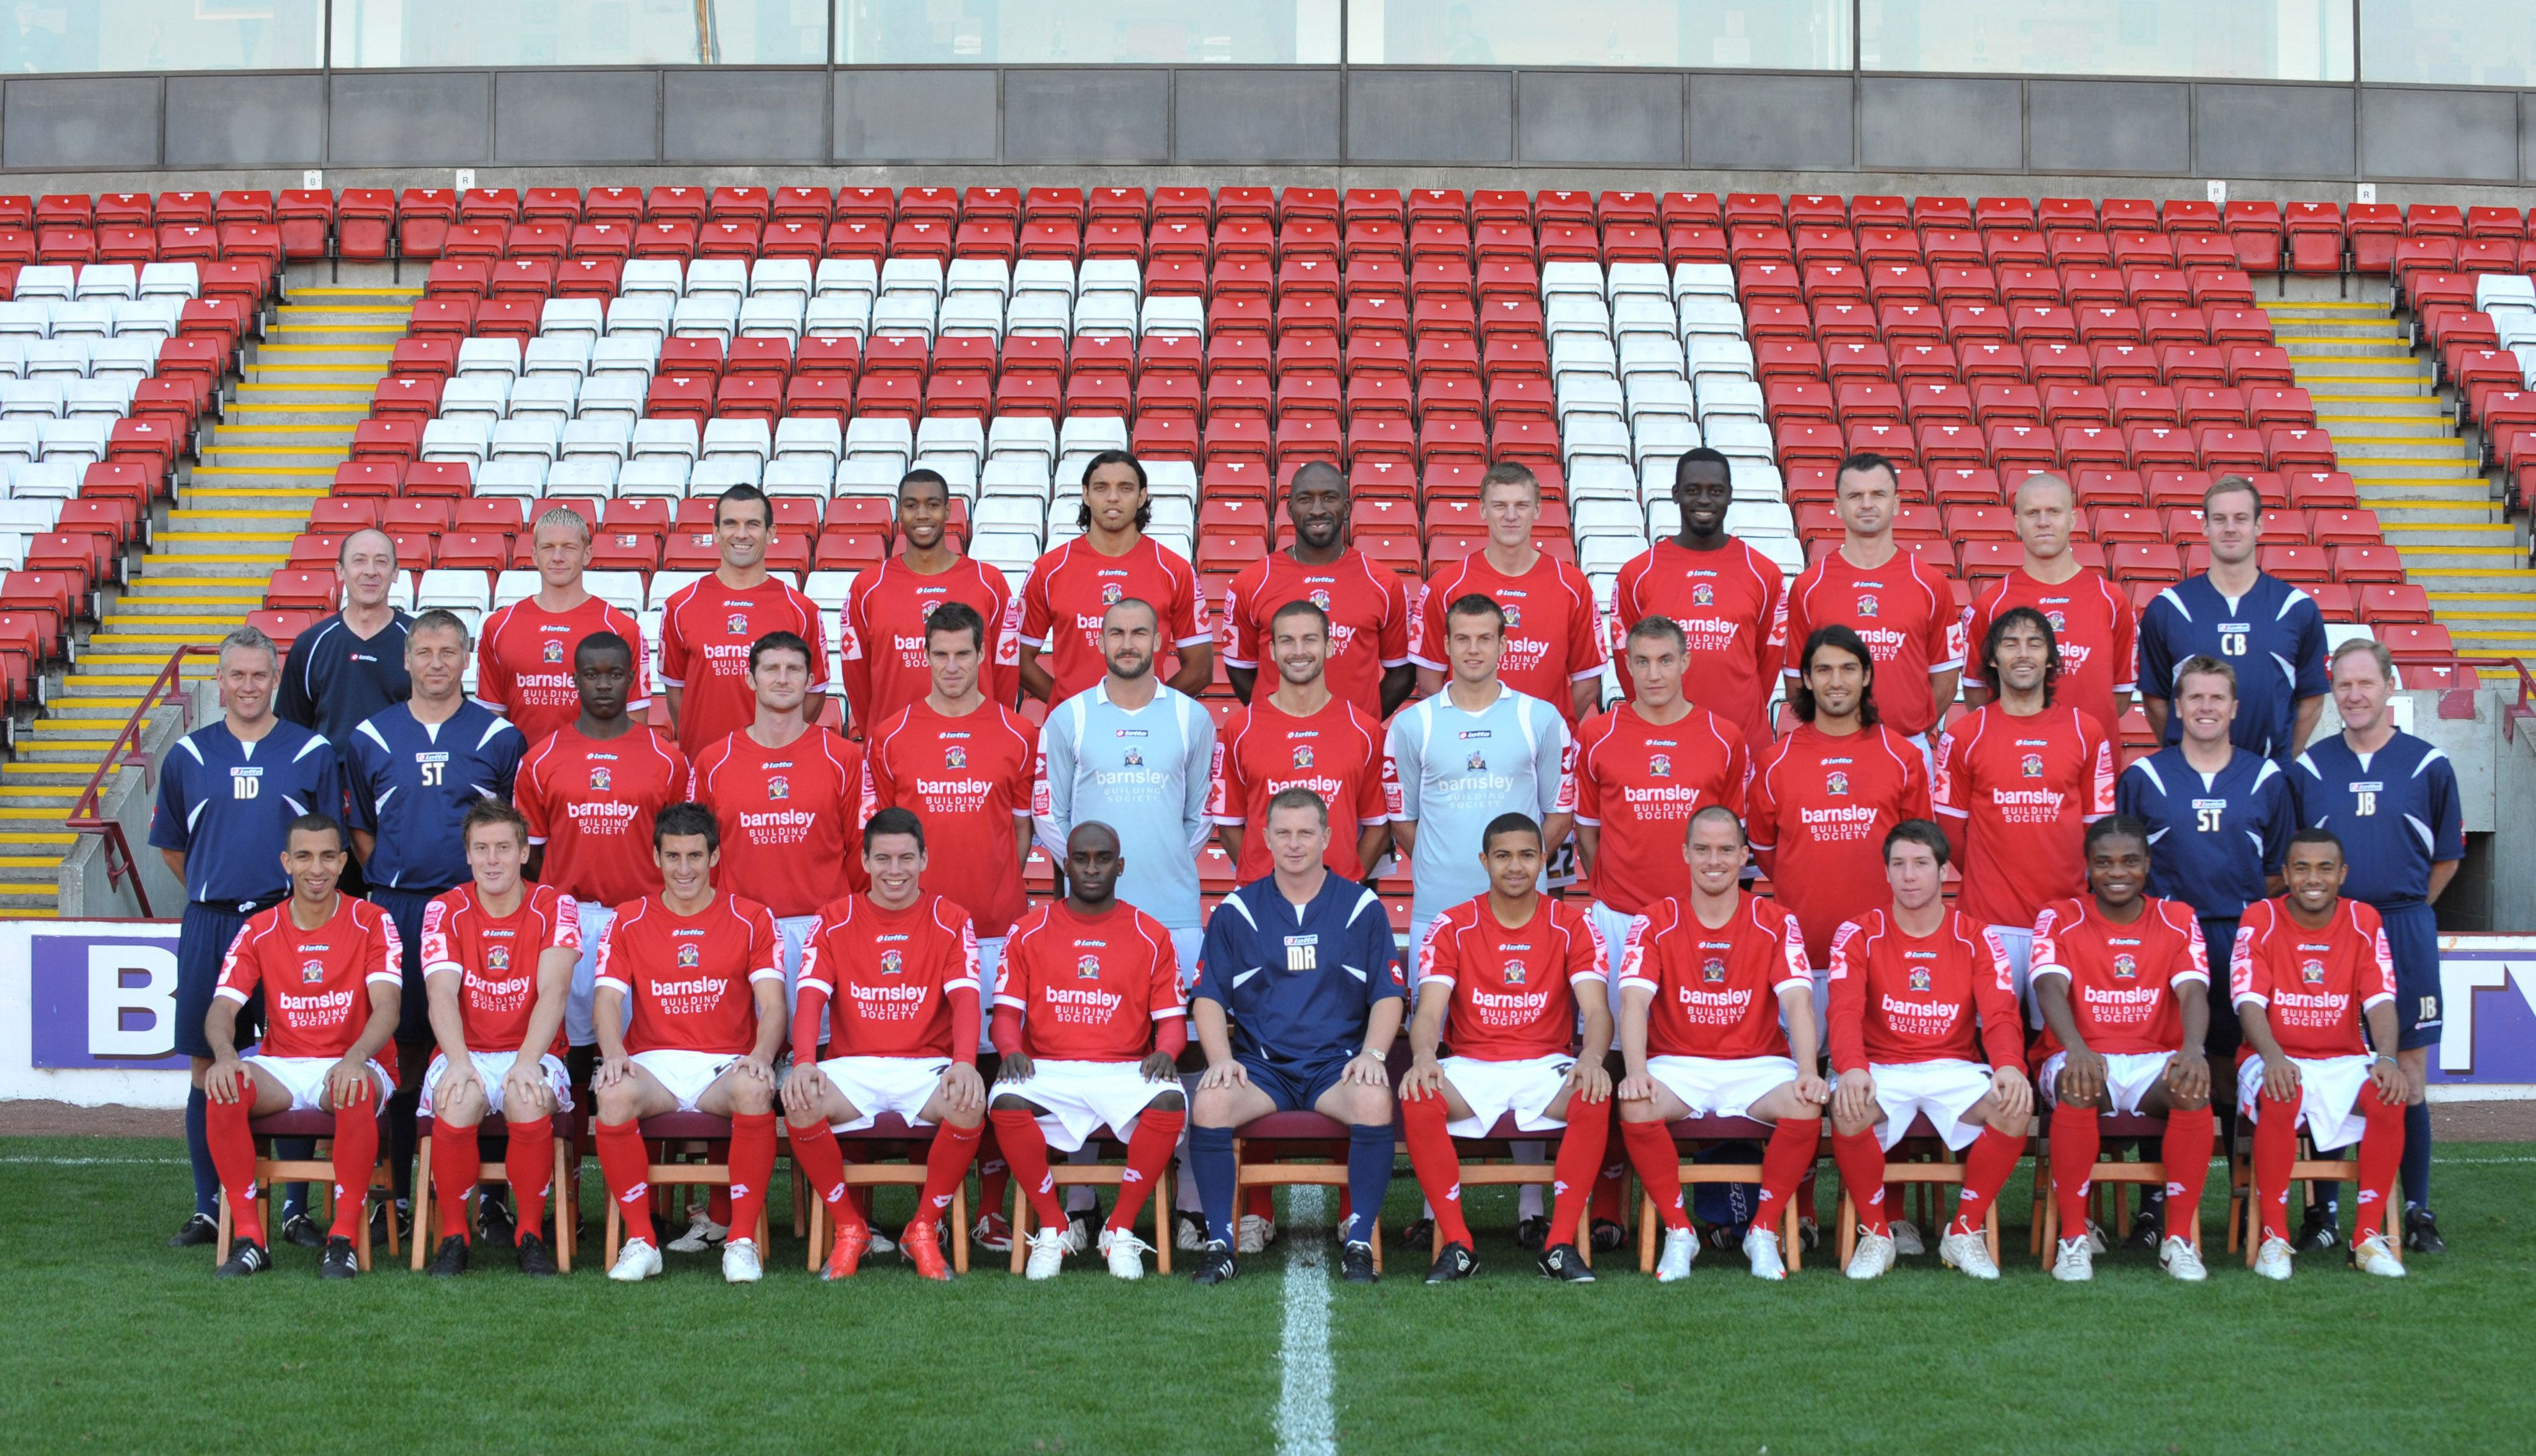 Pin on Barnsley FC Team photos throughout the years